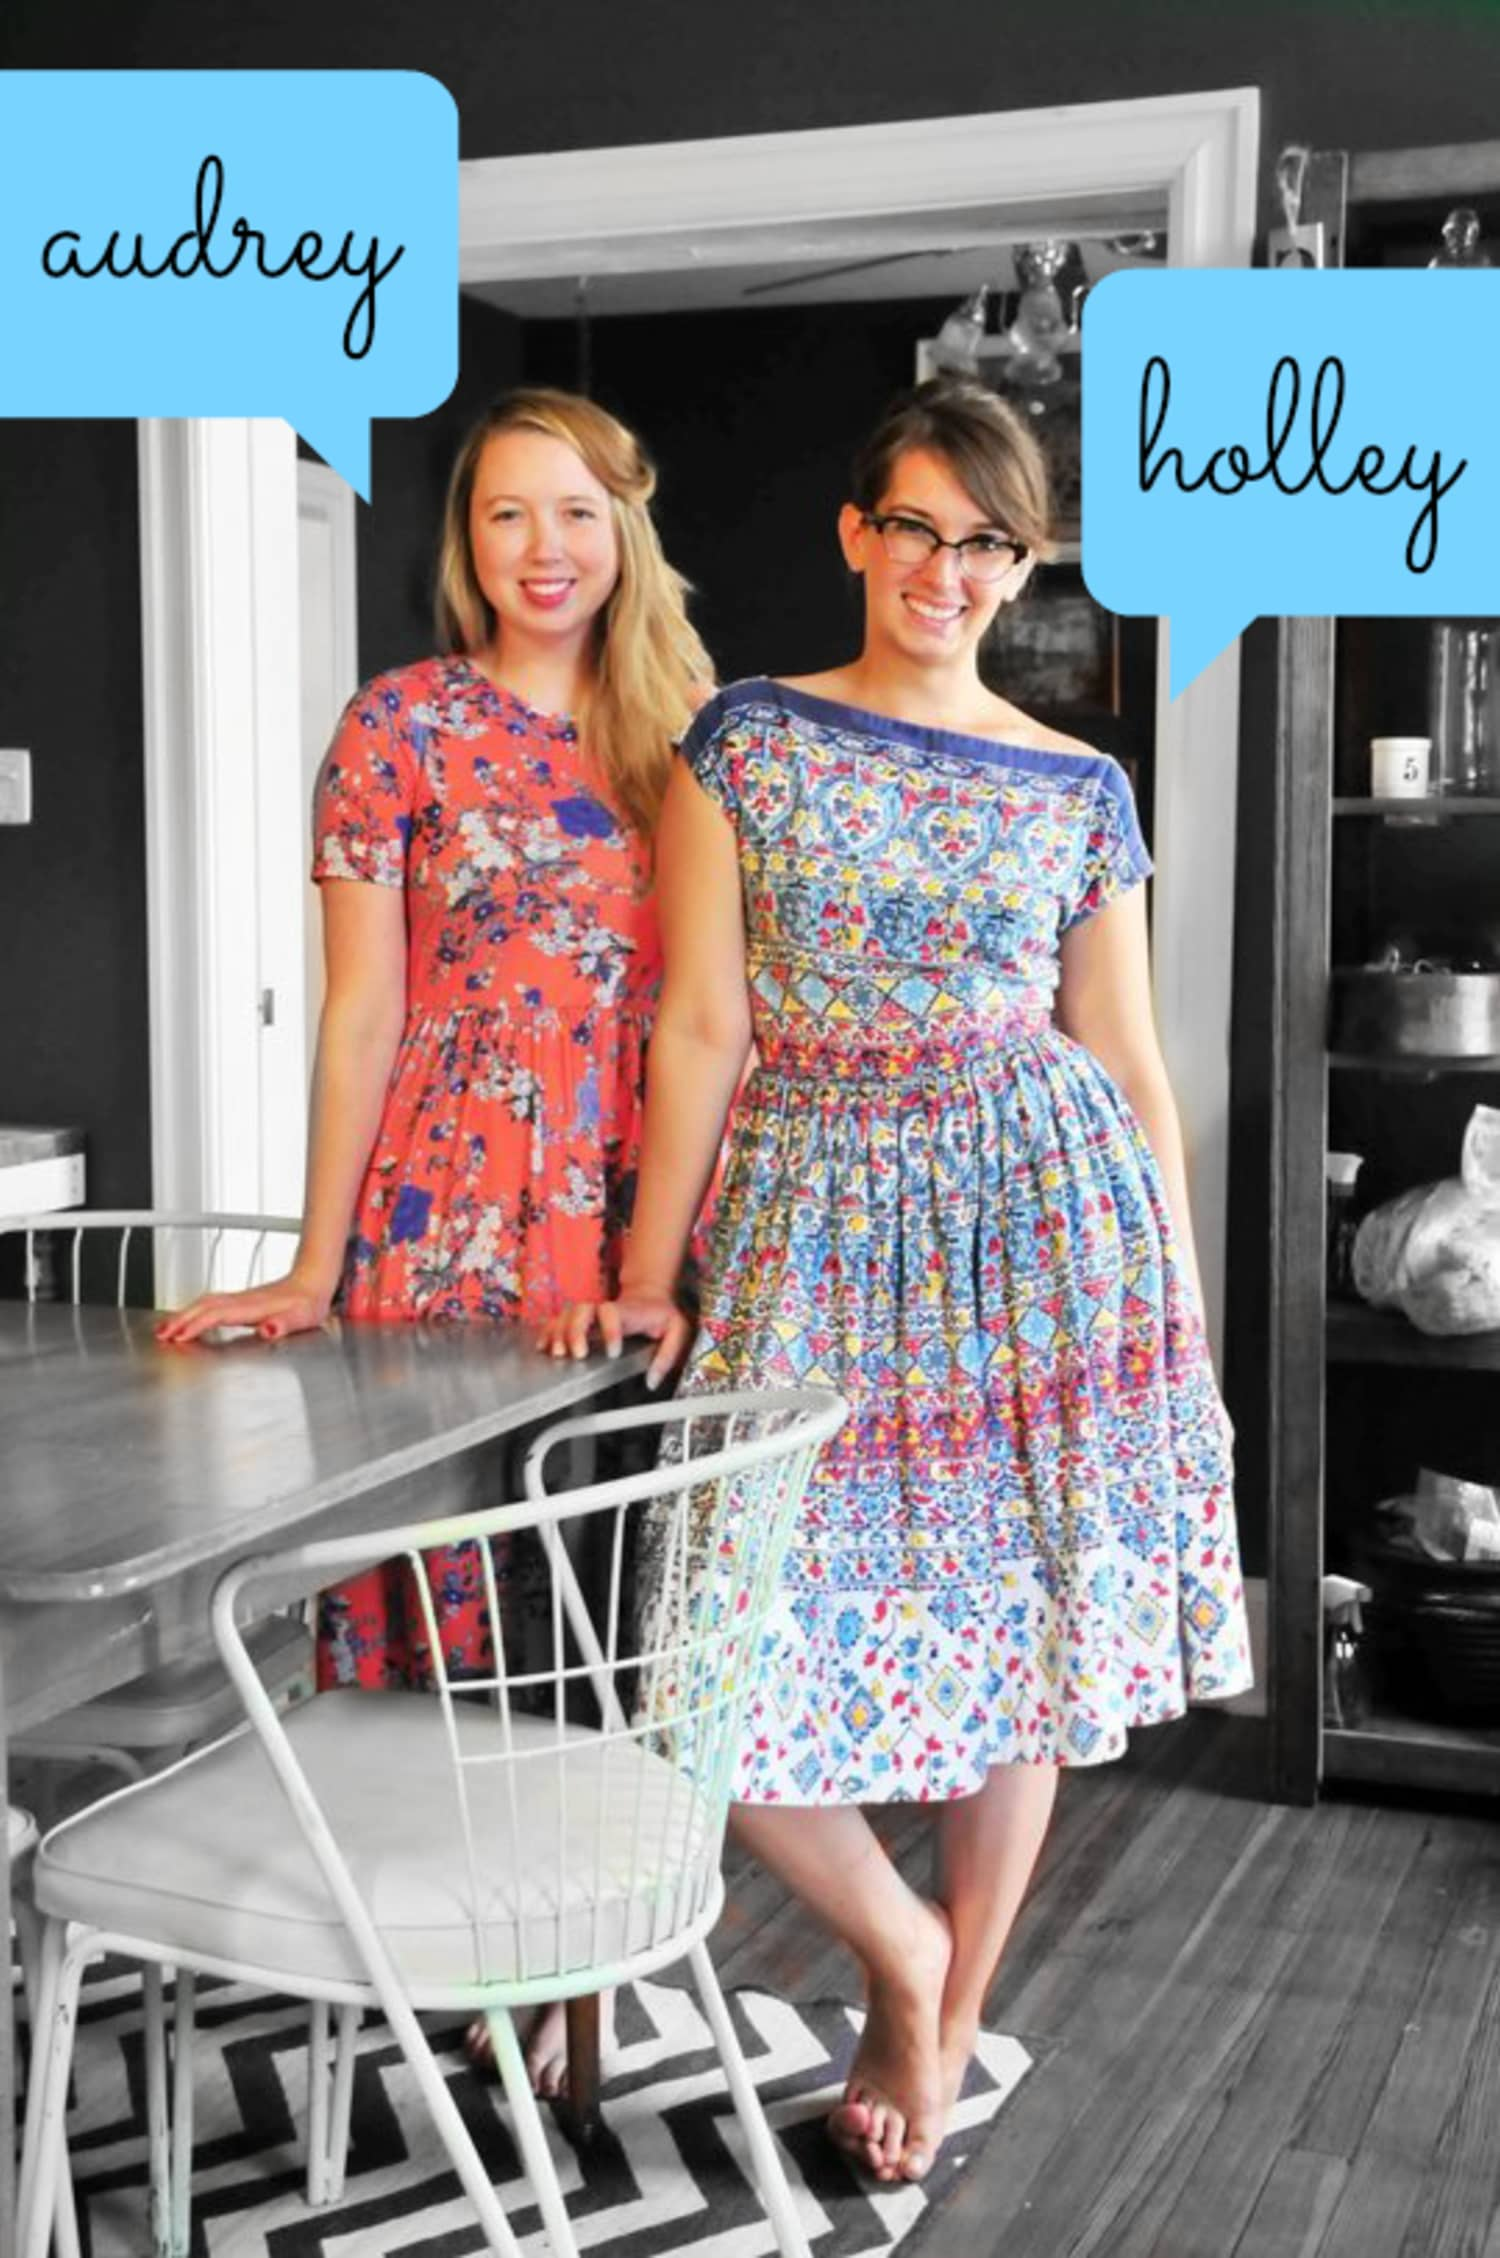 Fashionable People: Holley and Audrey's Real Life Style